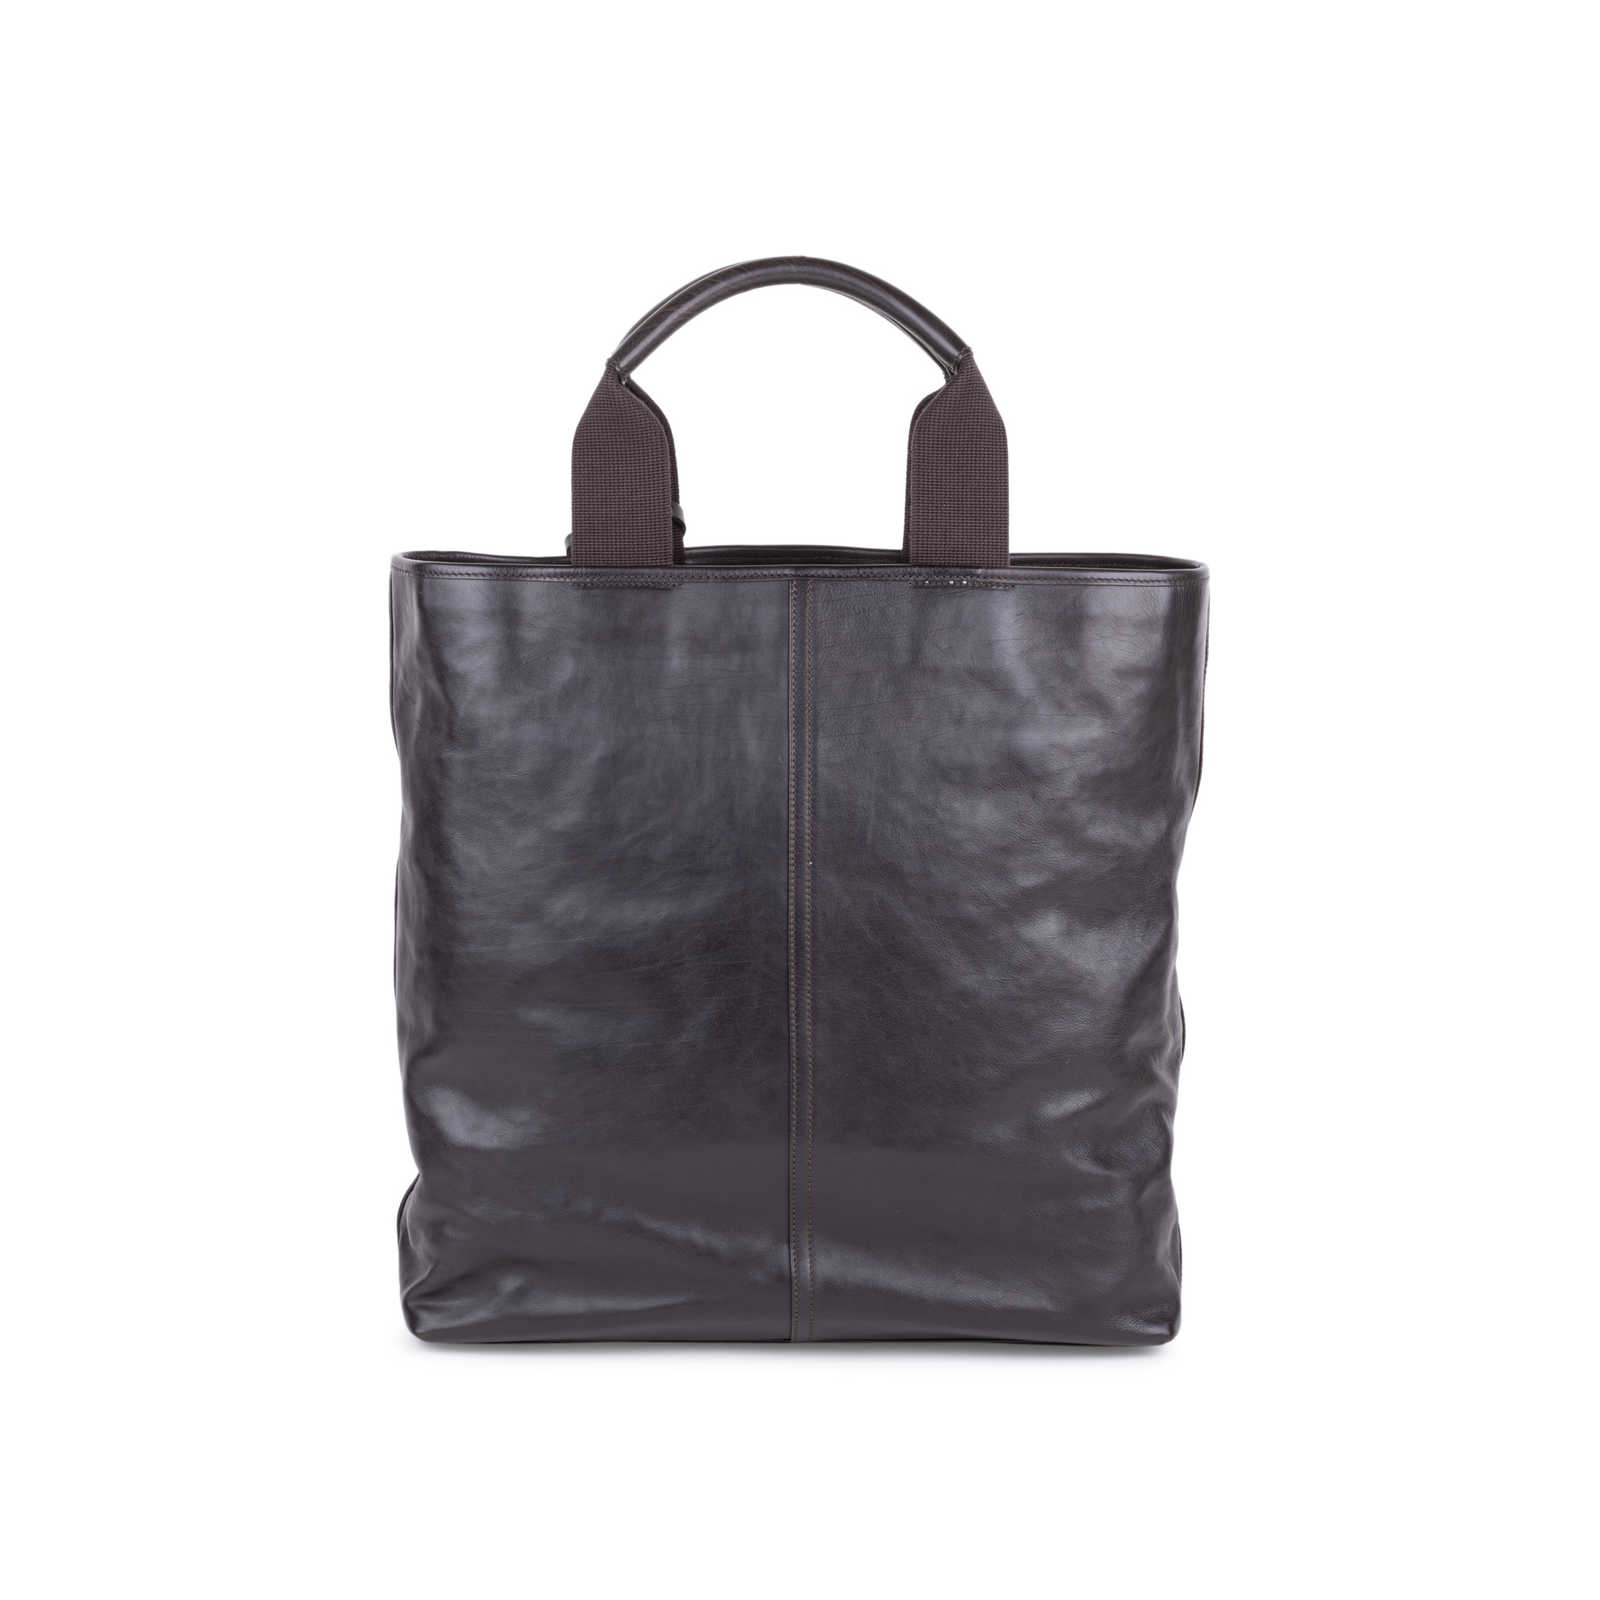 ... Authentic Pre Owned Yves Saint Laurent Y Tote Bag (PSS-585-00010) ... 763714eb22